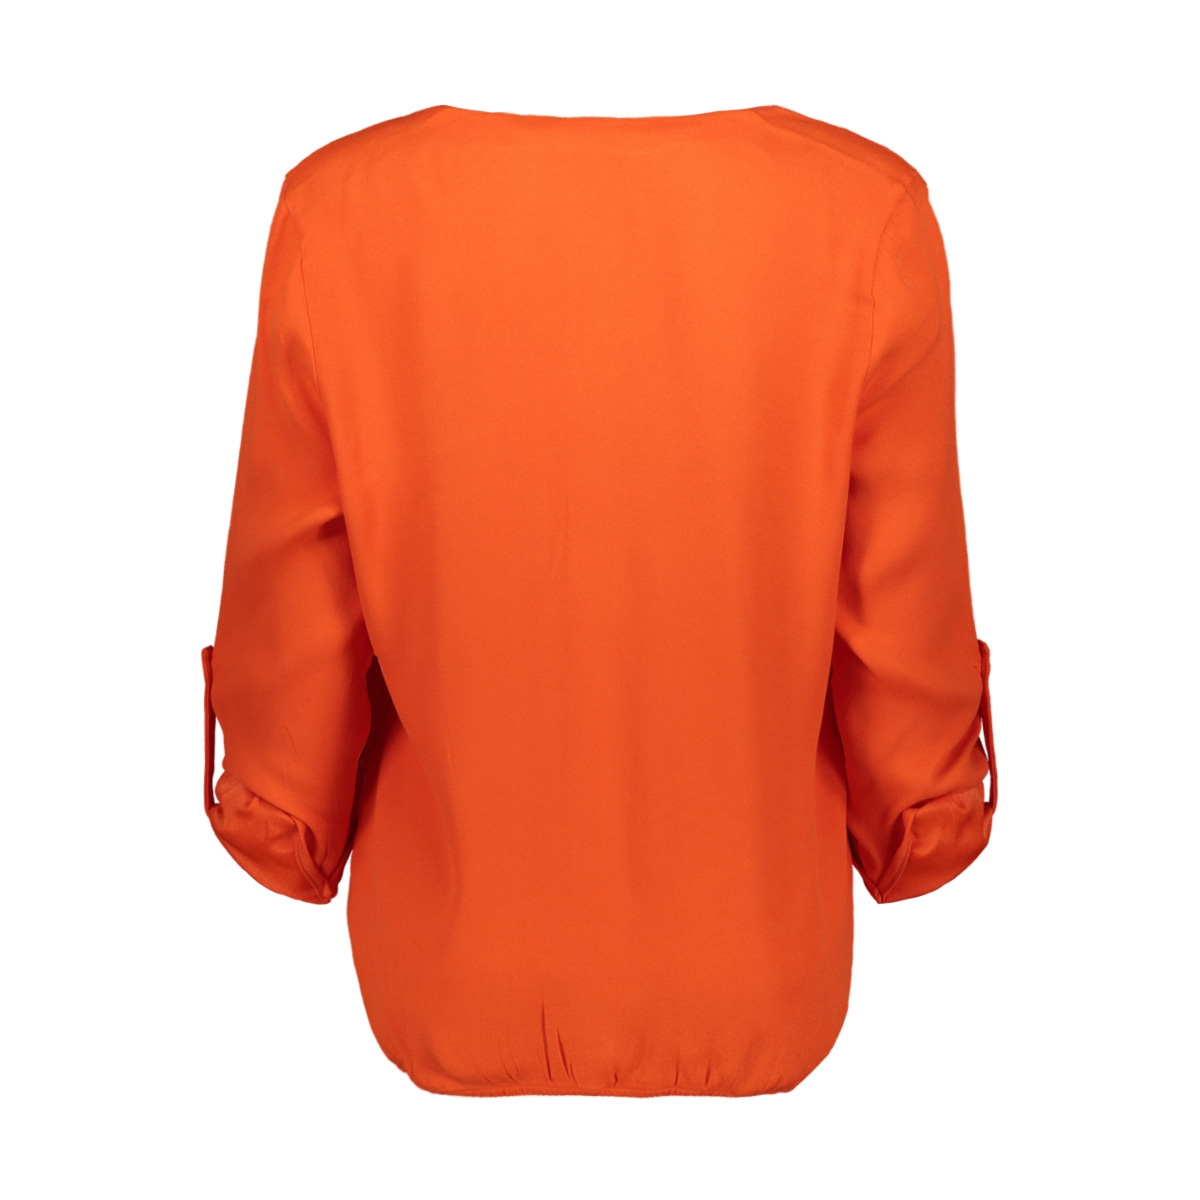 aura crepe blouse 194 zoso blouse 0800 orange